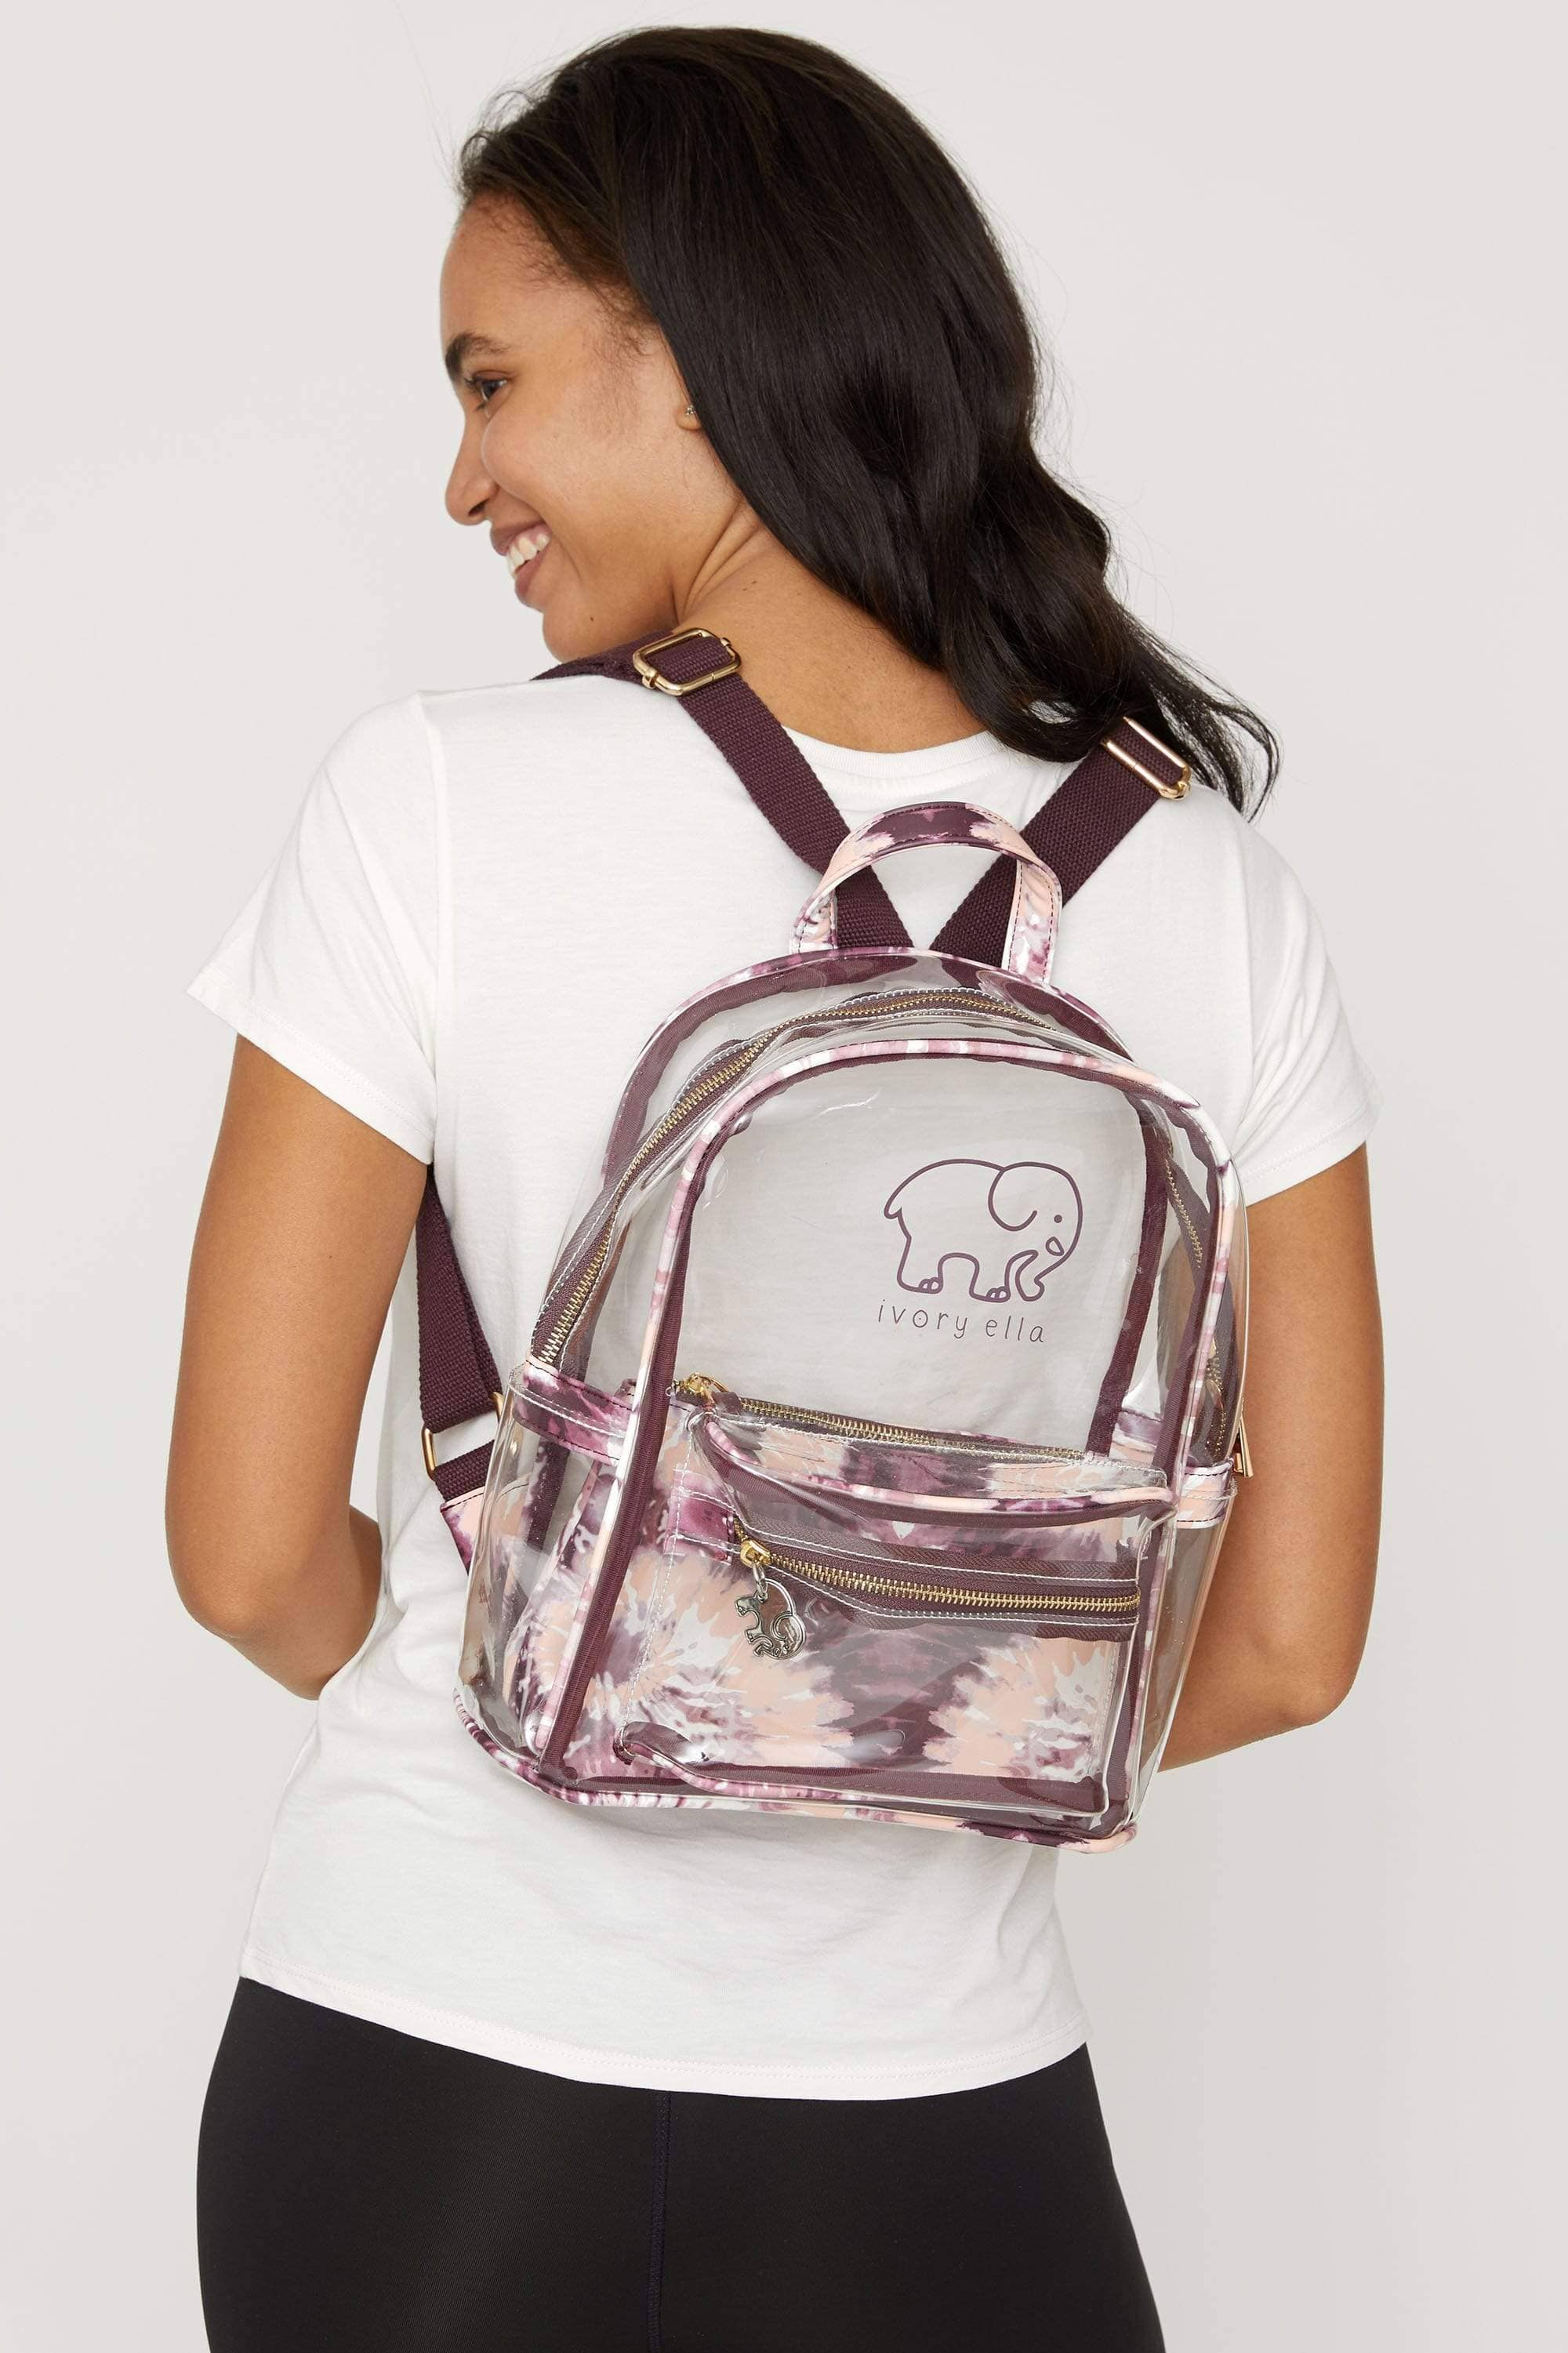 Tie Dye Clearbody Mini Backpack - Ivory Ella - Accessories